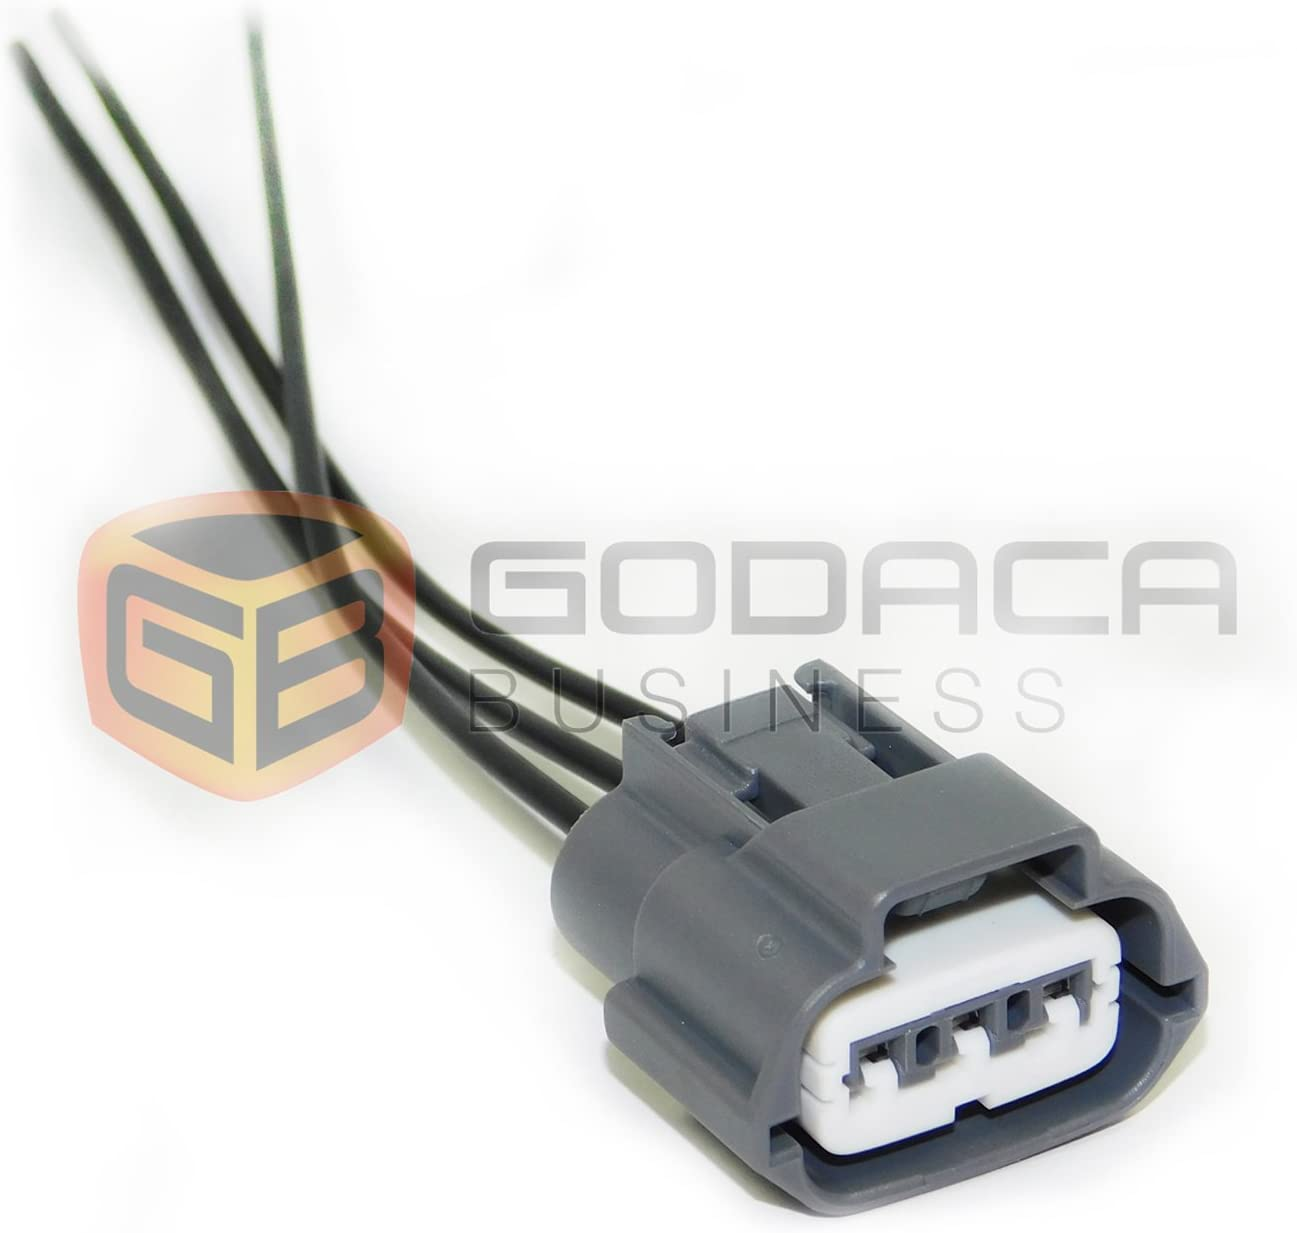 Amazon.com: 1x Connector 3-way for Mazda Ignition Coil UF540: AutomotiveAmazon.com